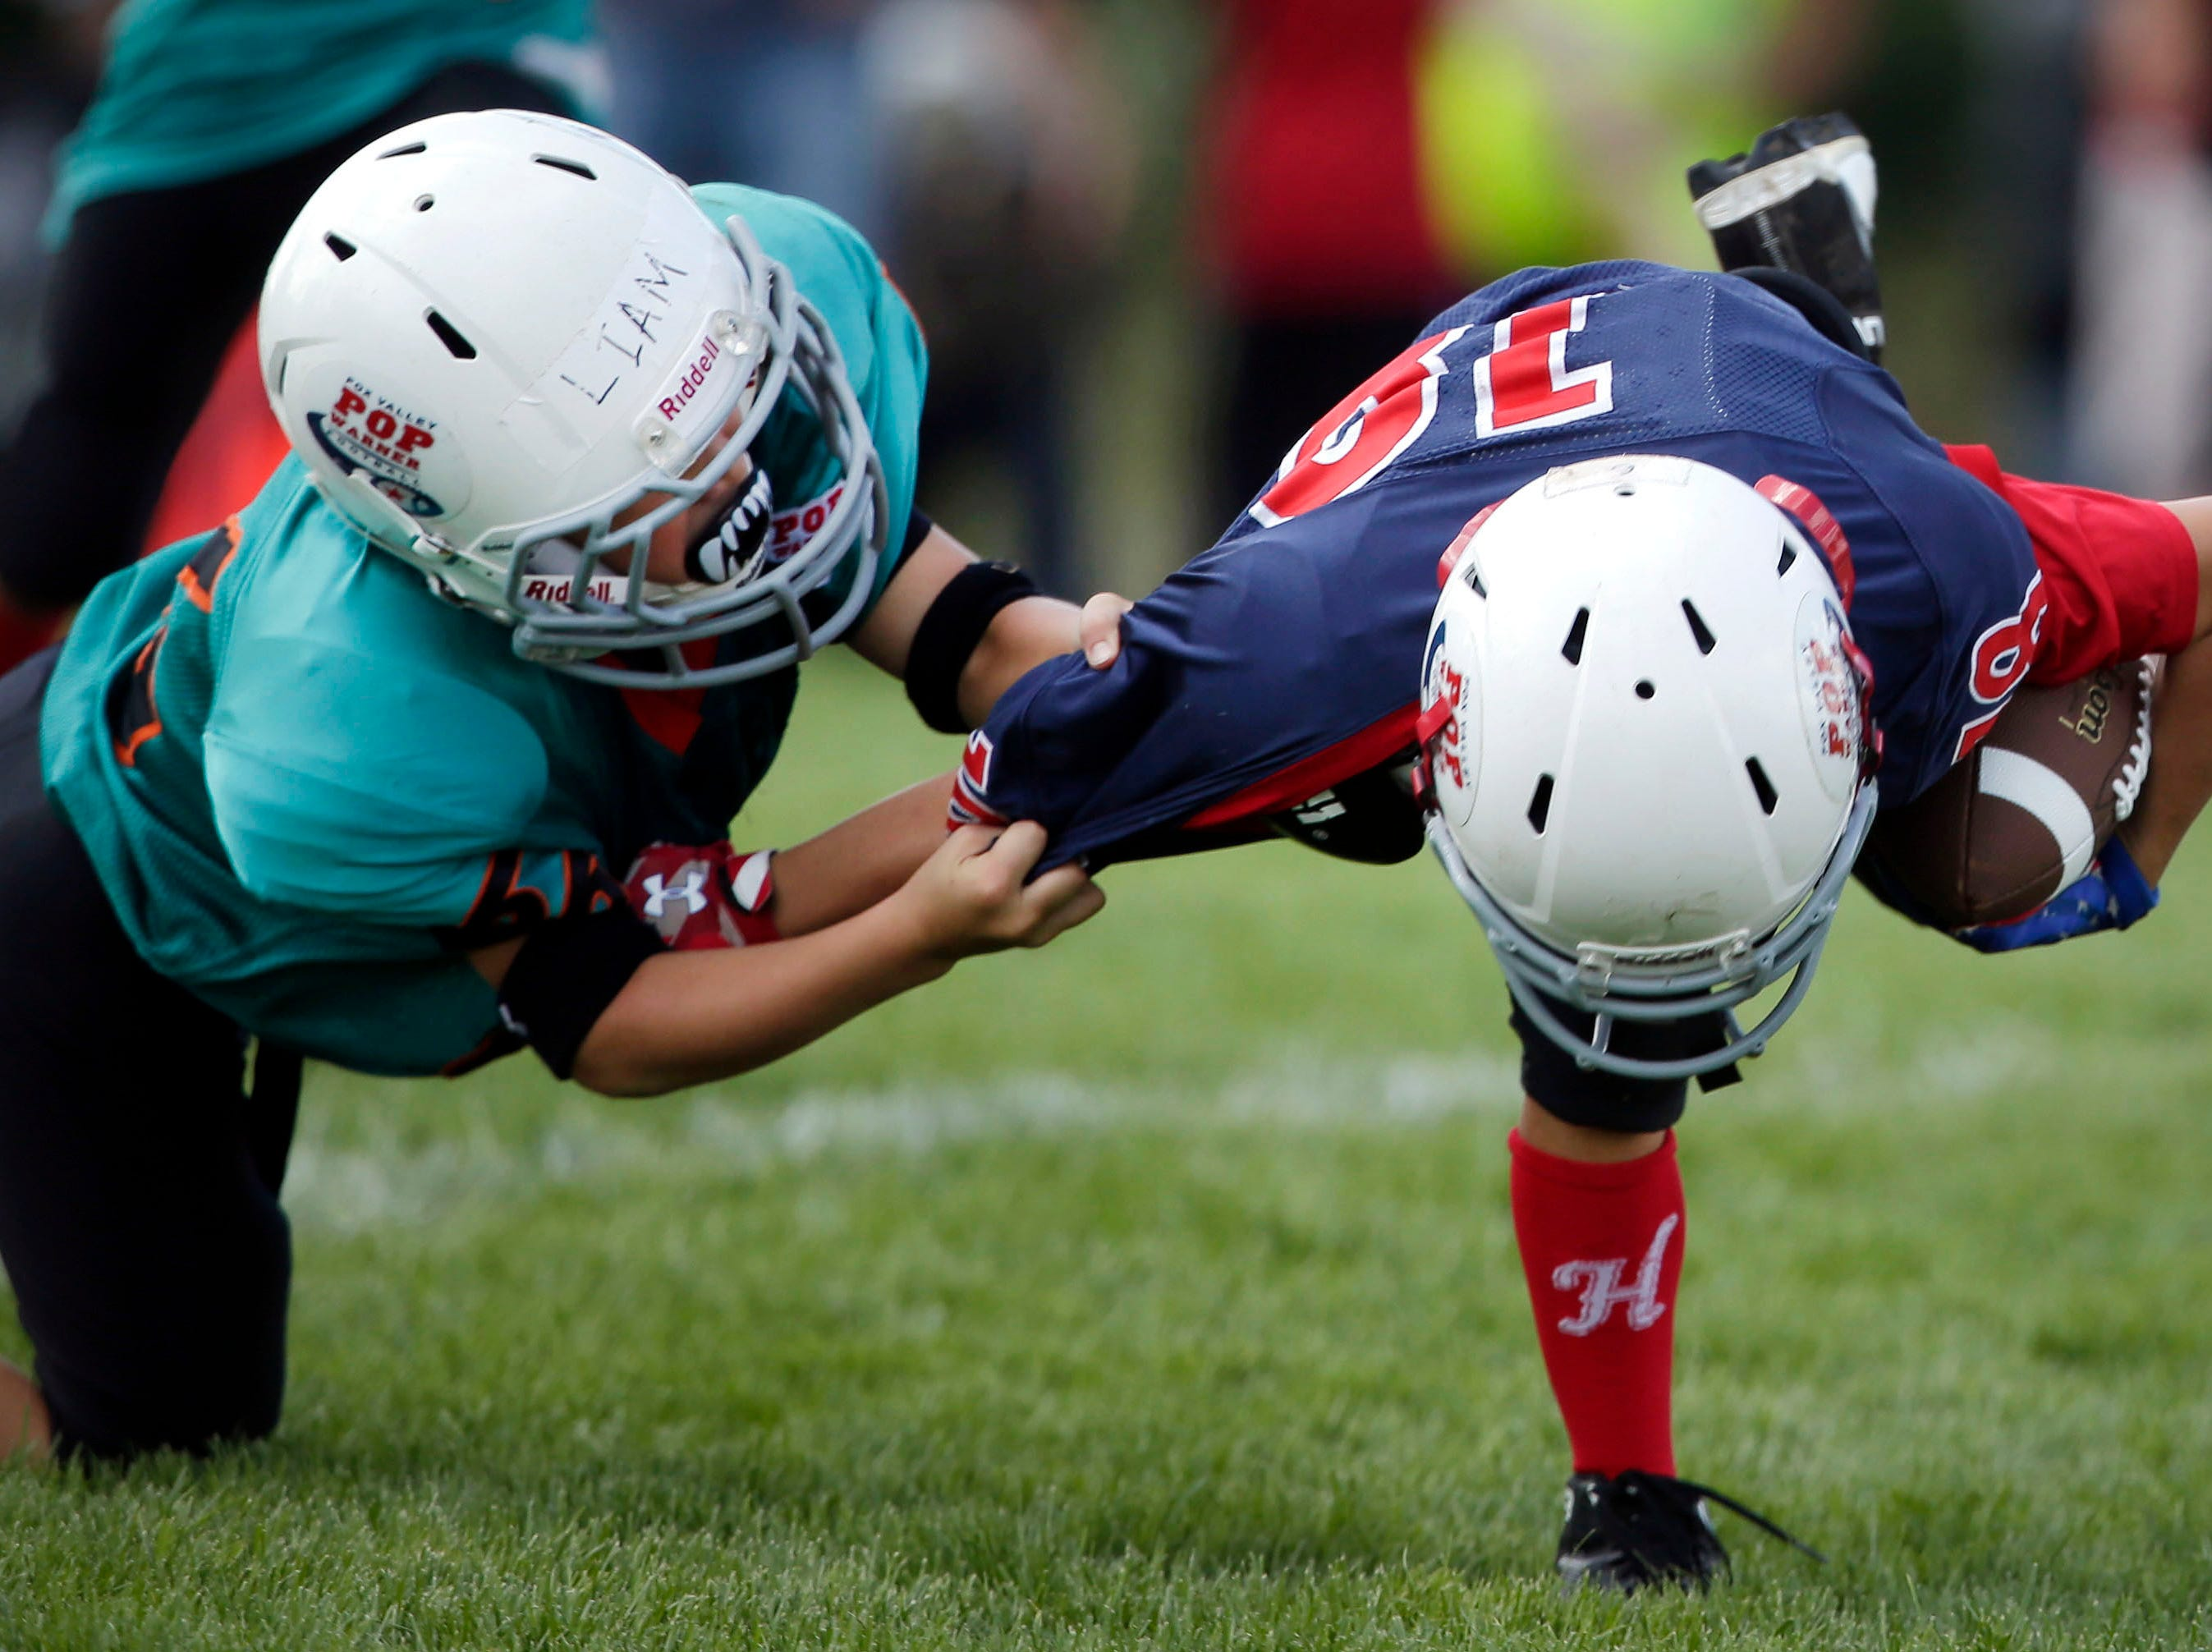 Liam Kelley of the Rockets tackles a Patriots player as Fox Valley Pop Warner Football opens the season Saturday, September 8, 2018, at Plamann Park in Grand Chute, Wis.Ron Page/USA TODAY NETWORK-Wisconsin